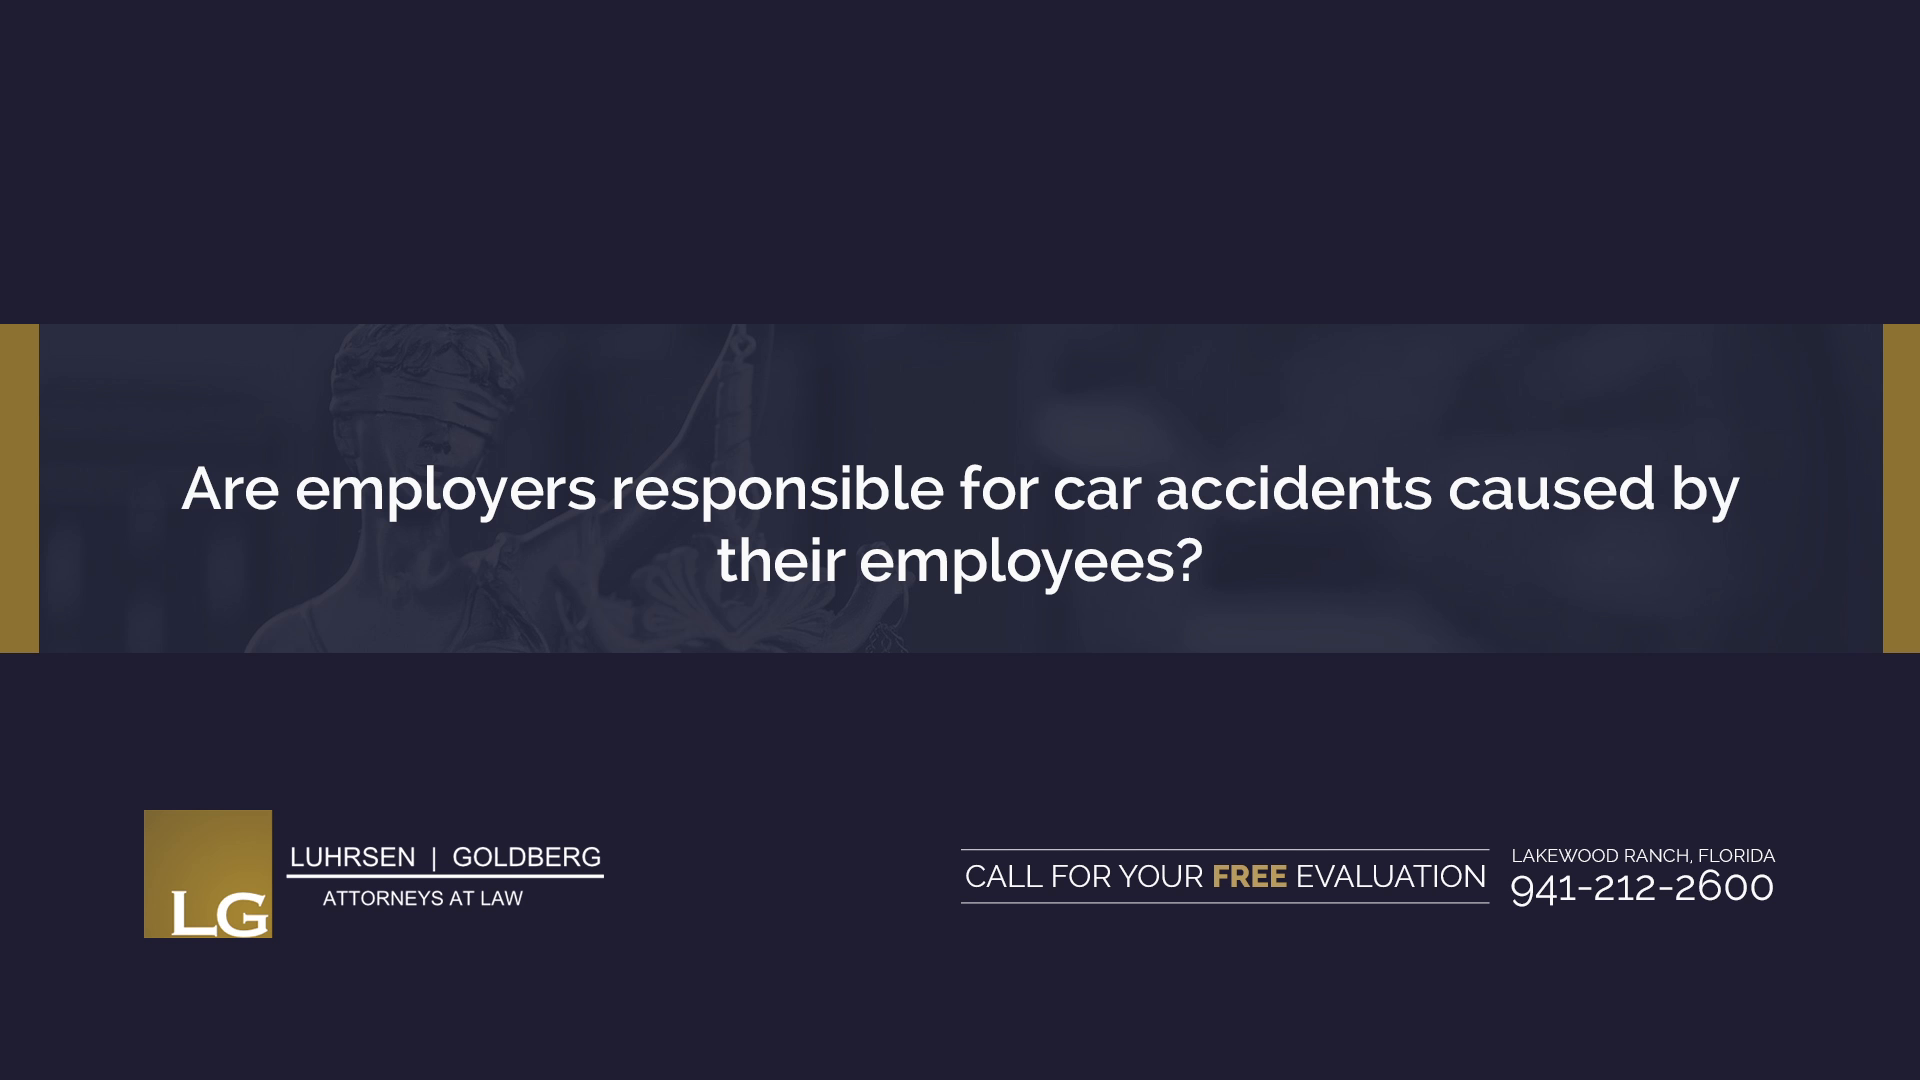 Are employers responsible for car accidents caused by their employees?